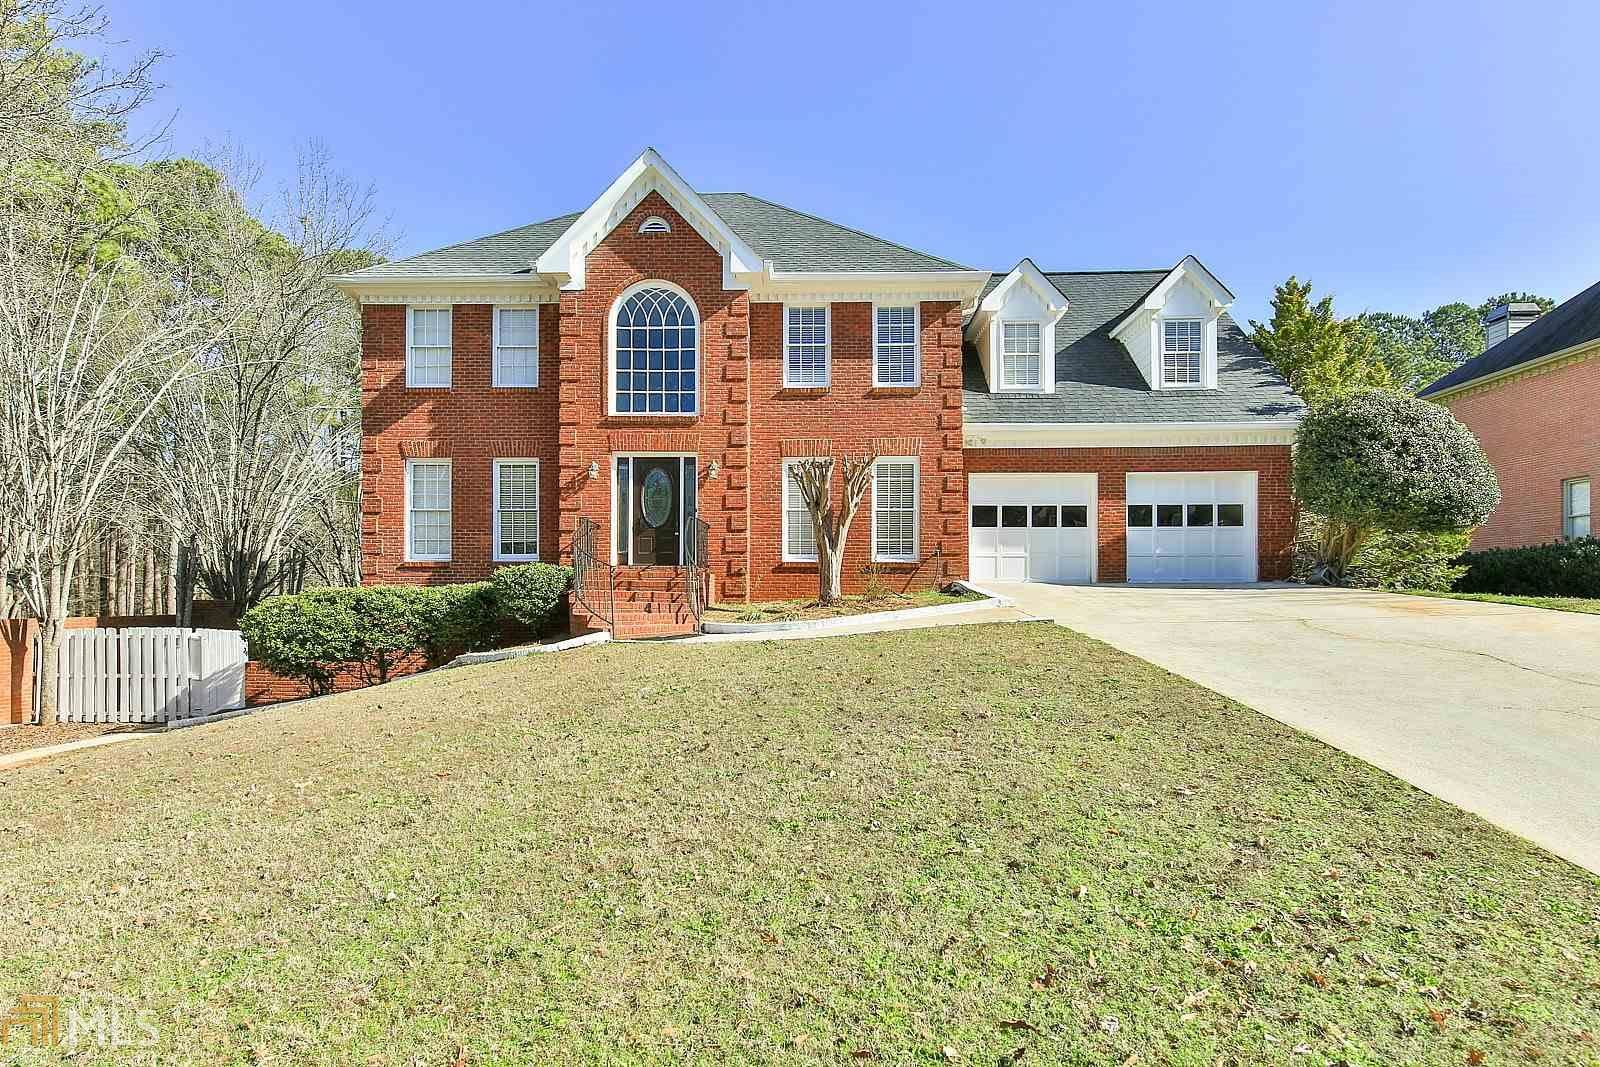 1020 Ashford Manor Ct, Lilburn, GA 30047 - MLS#: 8903485